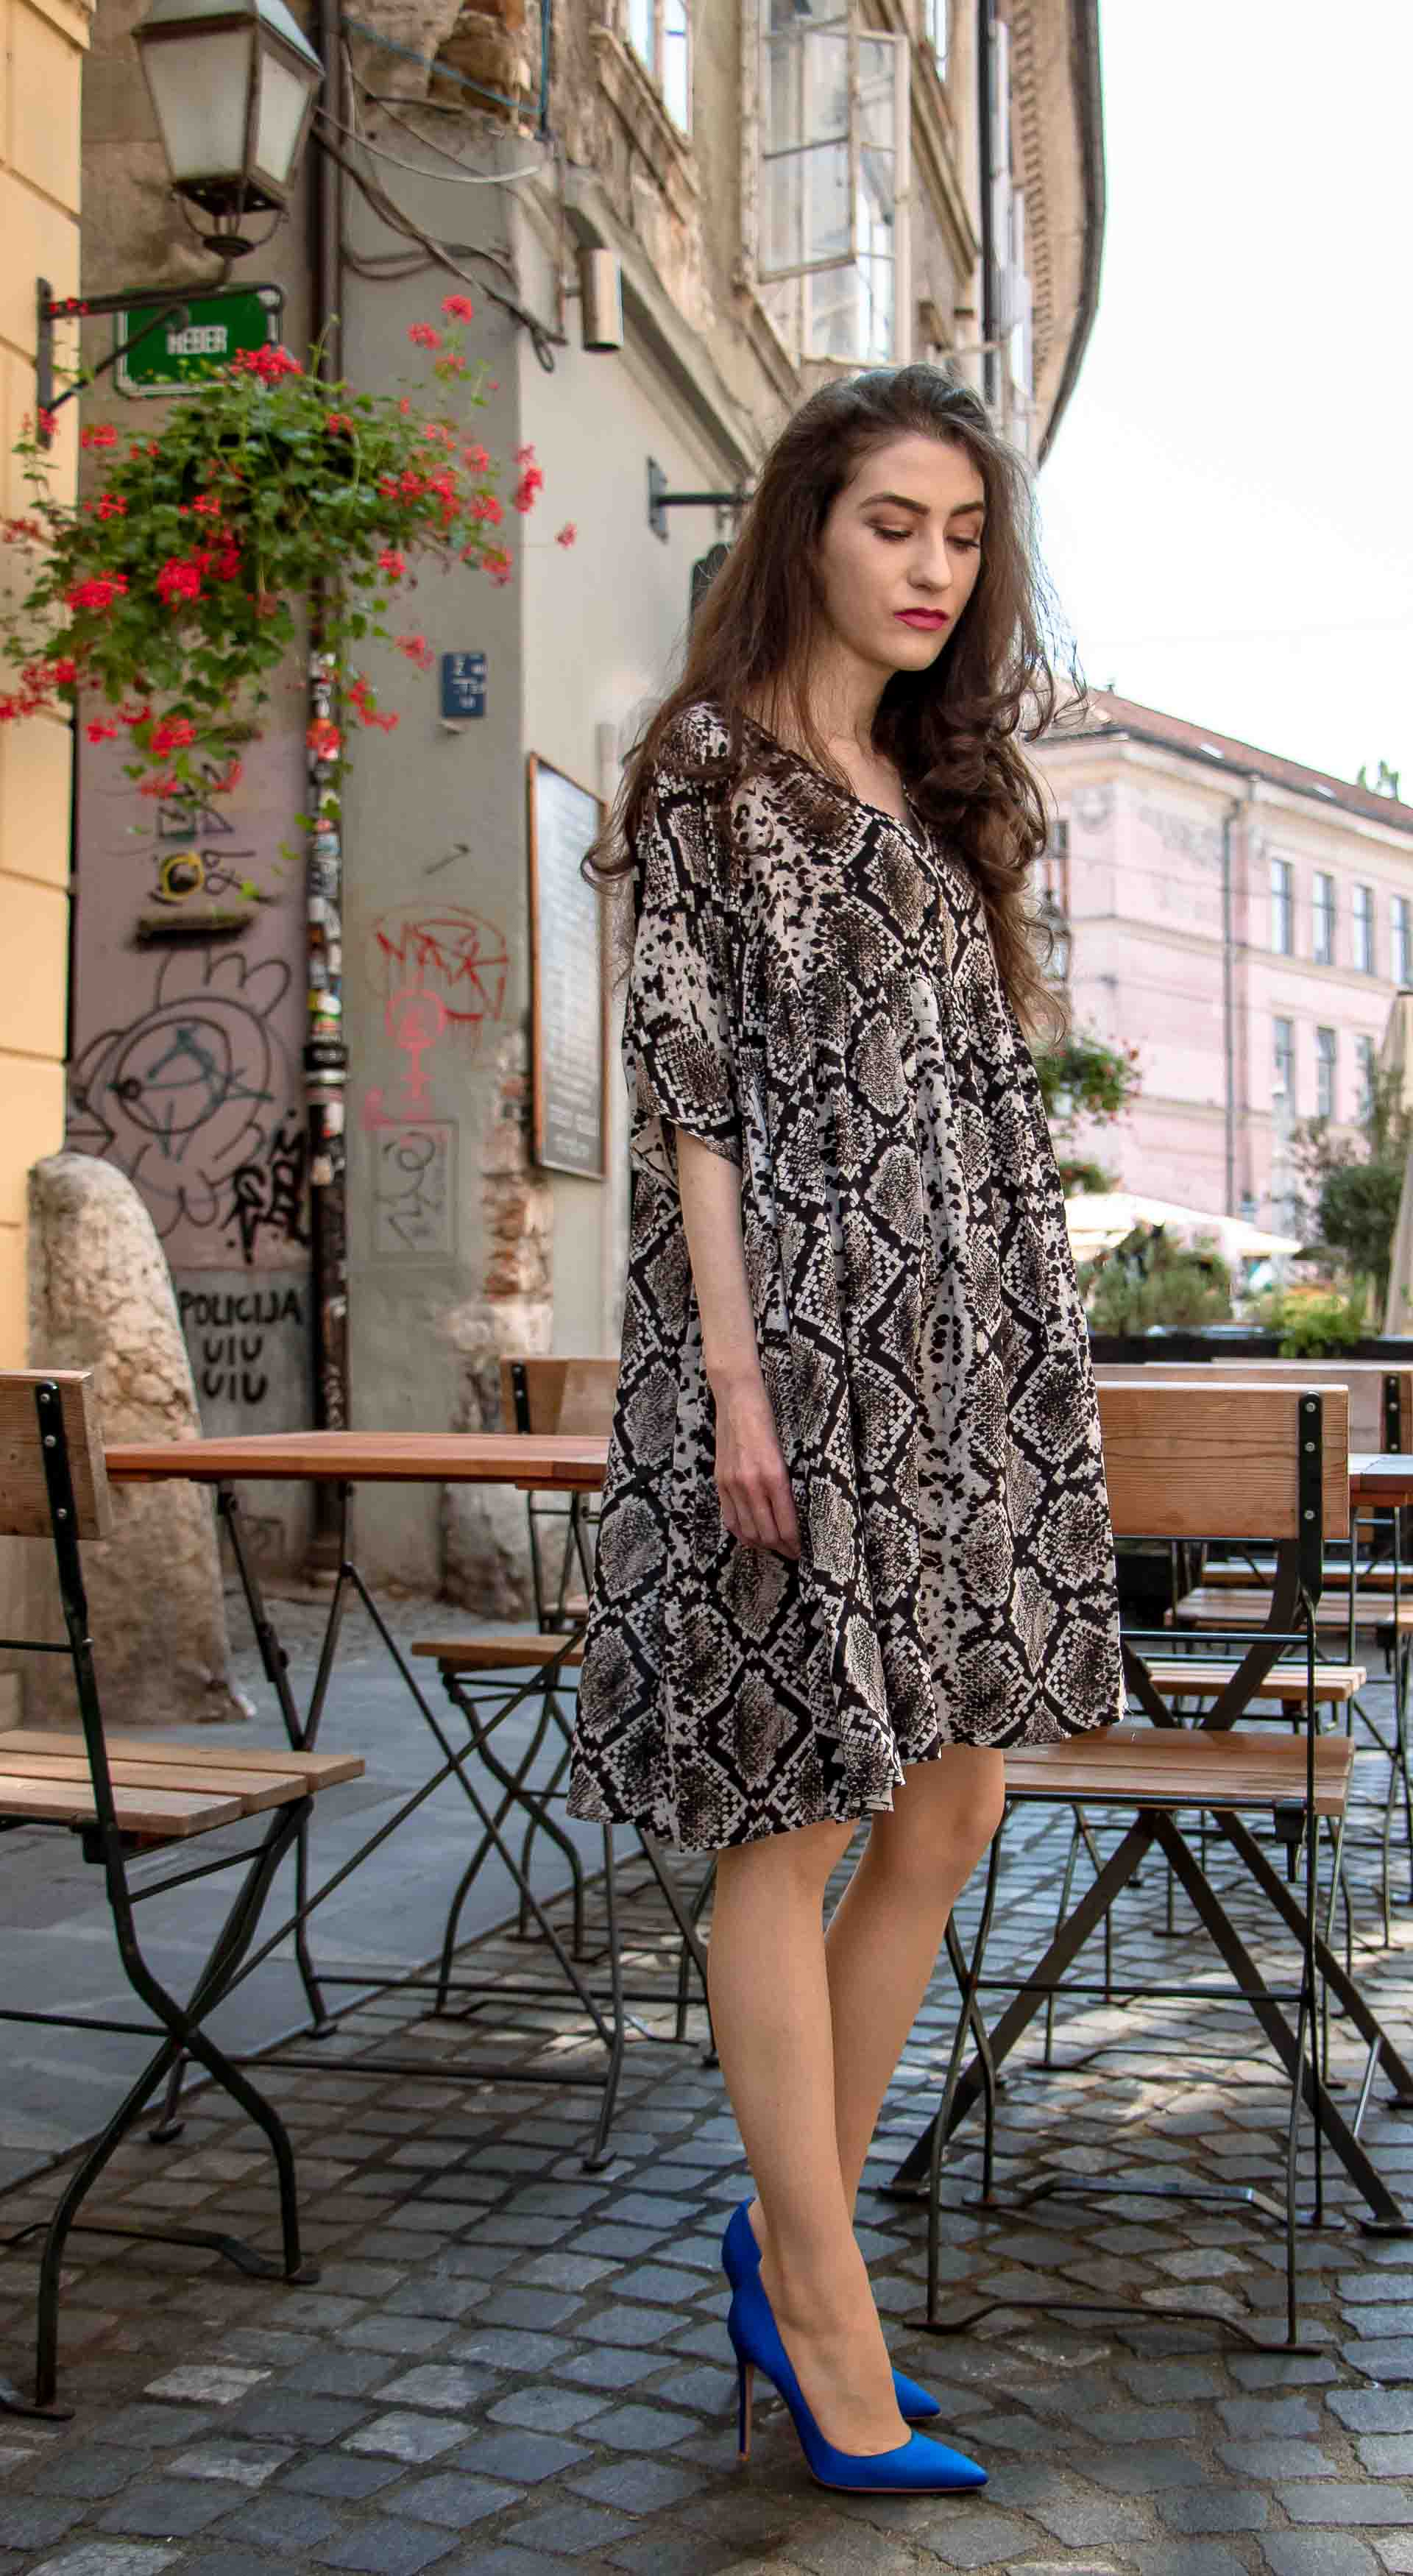 Beautiful Slovenian Fashion Blogger Veronika Lipar of Brunette from Wall dressed in flowing short snake print dress from Zara, blue Gianvito Rossi satin pumps, standing by the table on the street